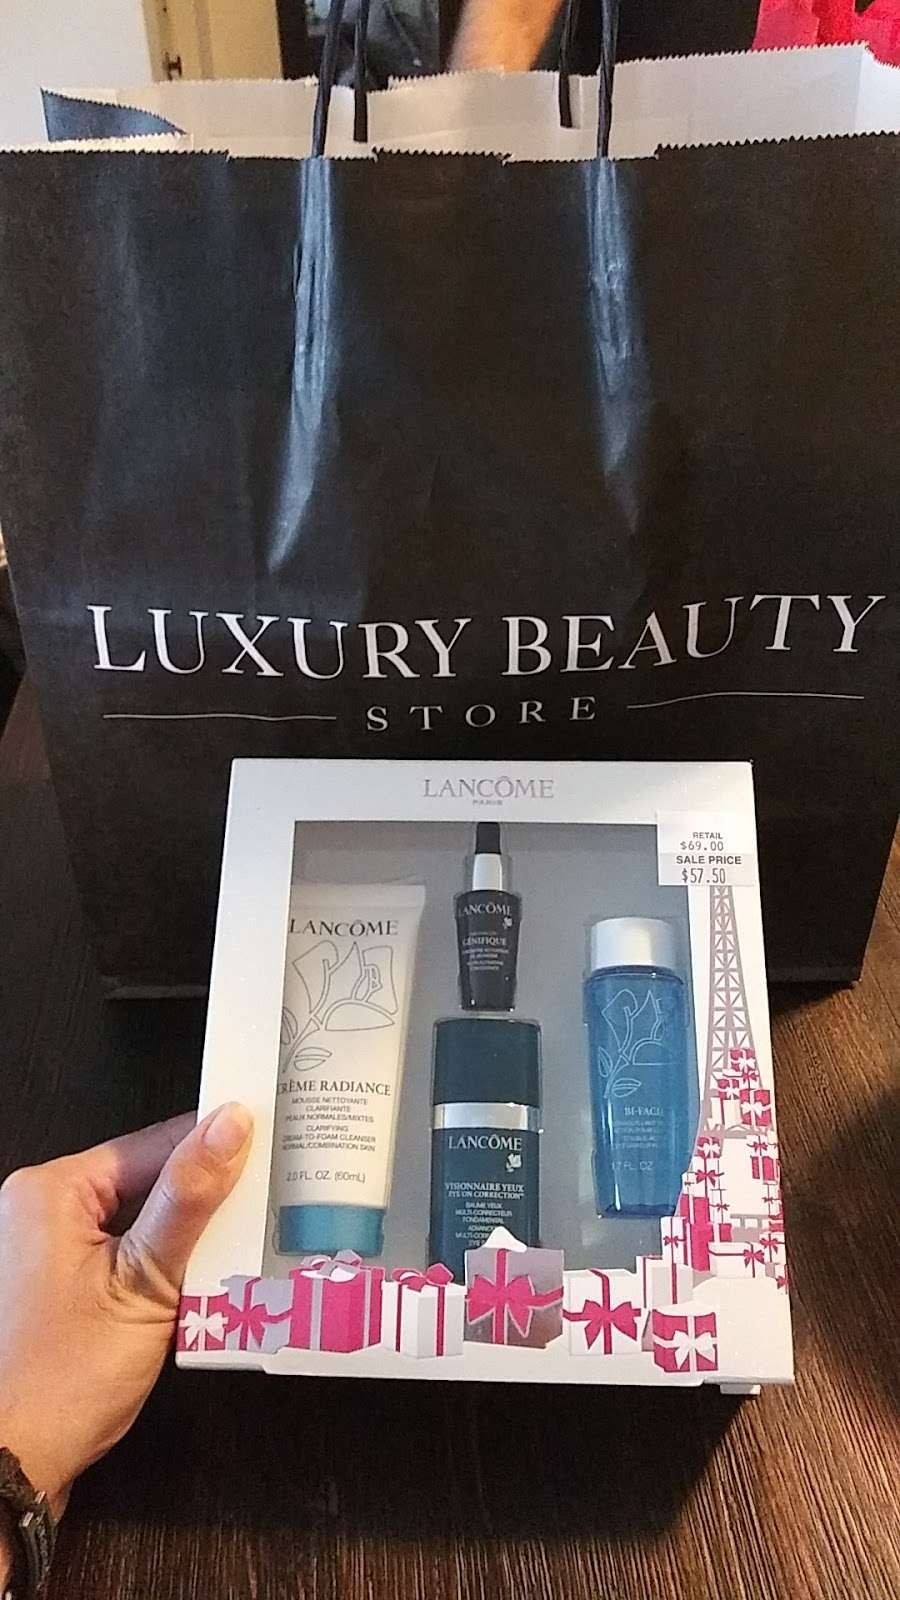 Luxury Beauty Store - store  | Photo 3 of 3 | Address: One Premium, Outlet Blvd Suite 345, Wrentham, MA 02093, USA | Phone: (508) 384-0417